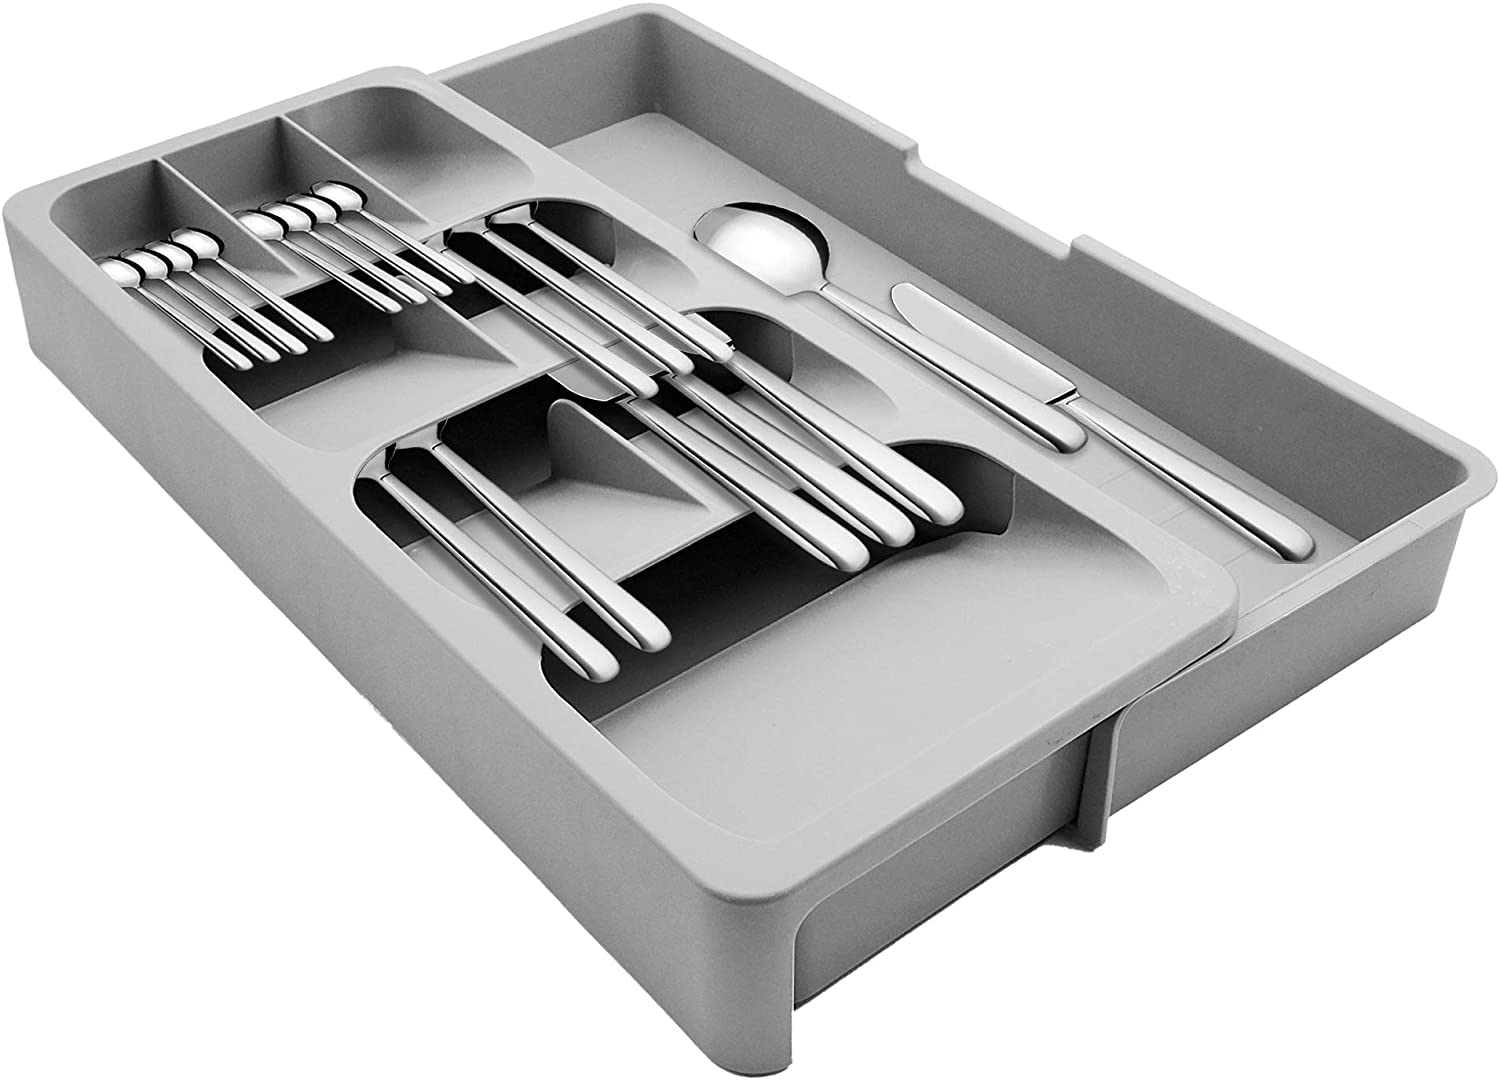 POTTIIS Kitchen DrawerStore Expandable Set,Expandable Plastic Kitchen Cabinet Drawer Storage Organizer Tray - for Storing Organizing Cutlery, Spoons, Cooking Utensils, Gadgets